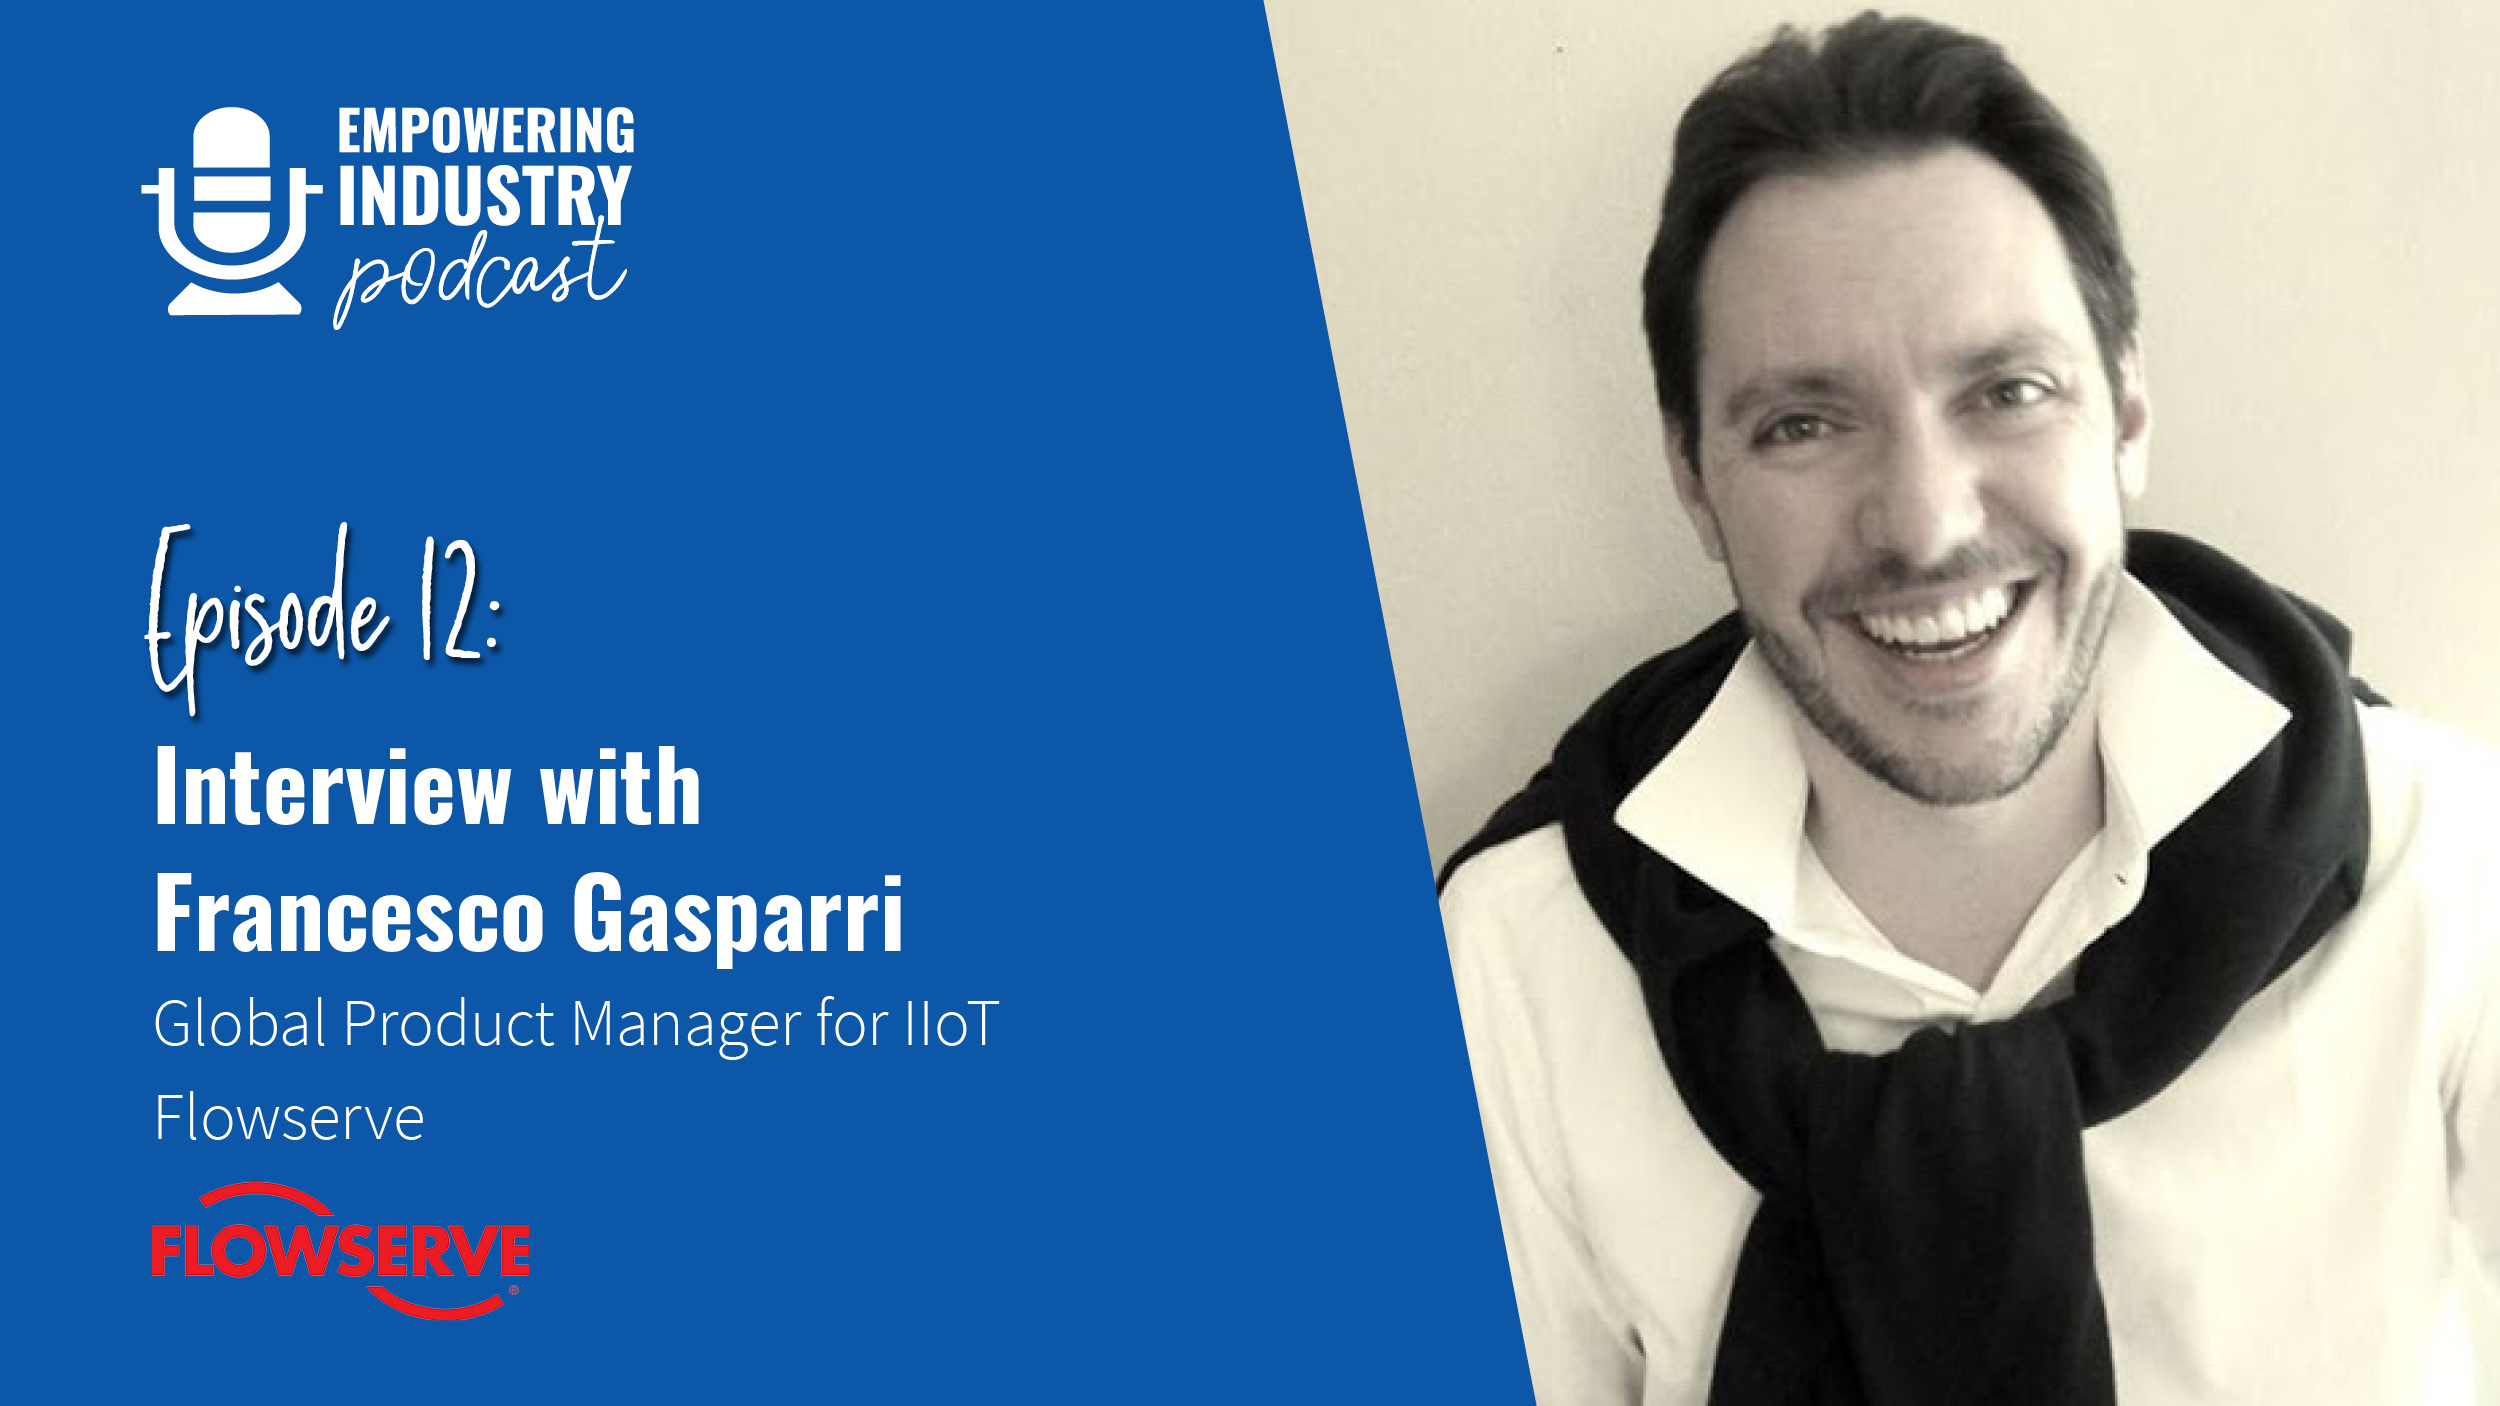 Interview with Francesco Gasparri